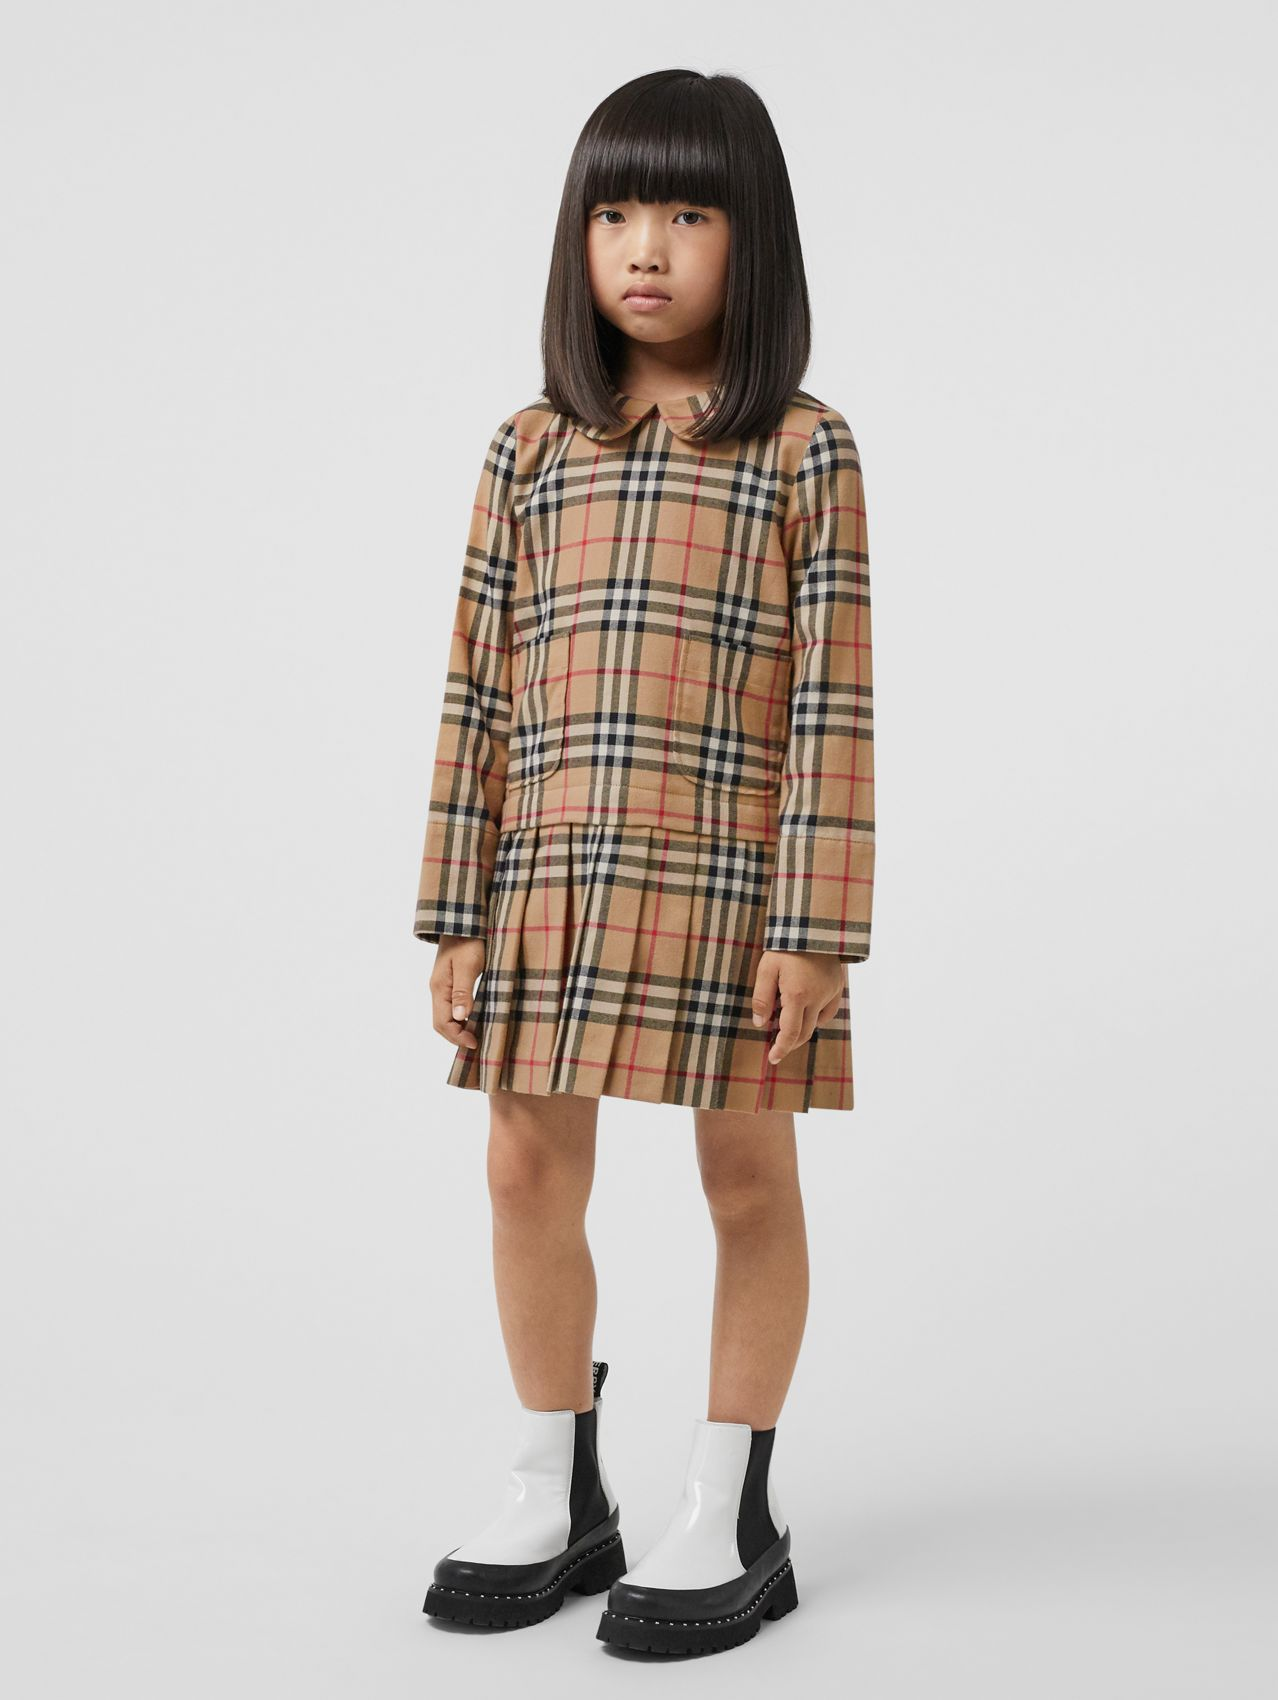 Peter Pan Collar Vintage Check Cotton Dress in Archive Beige